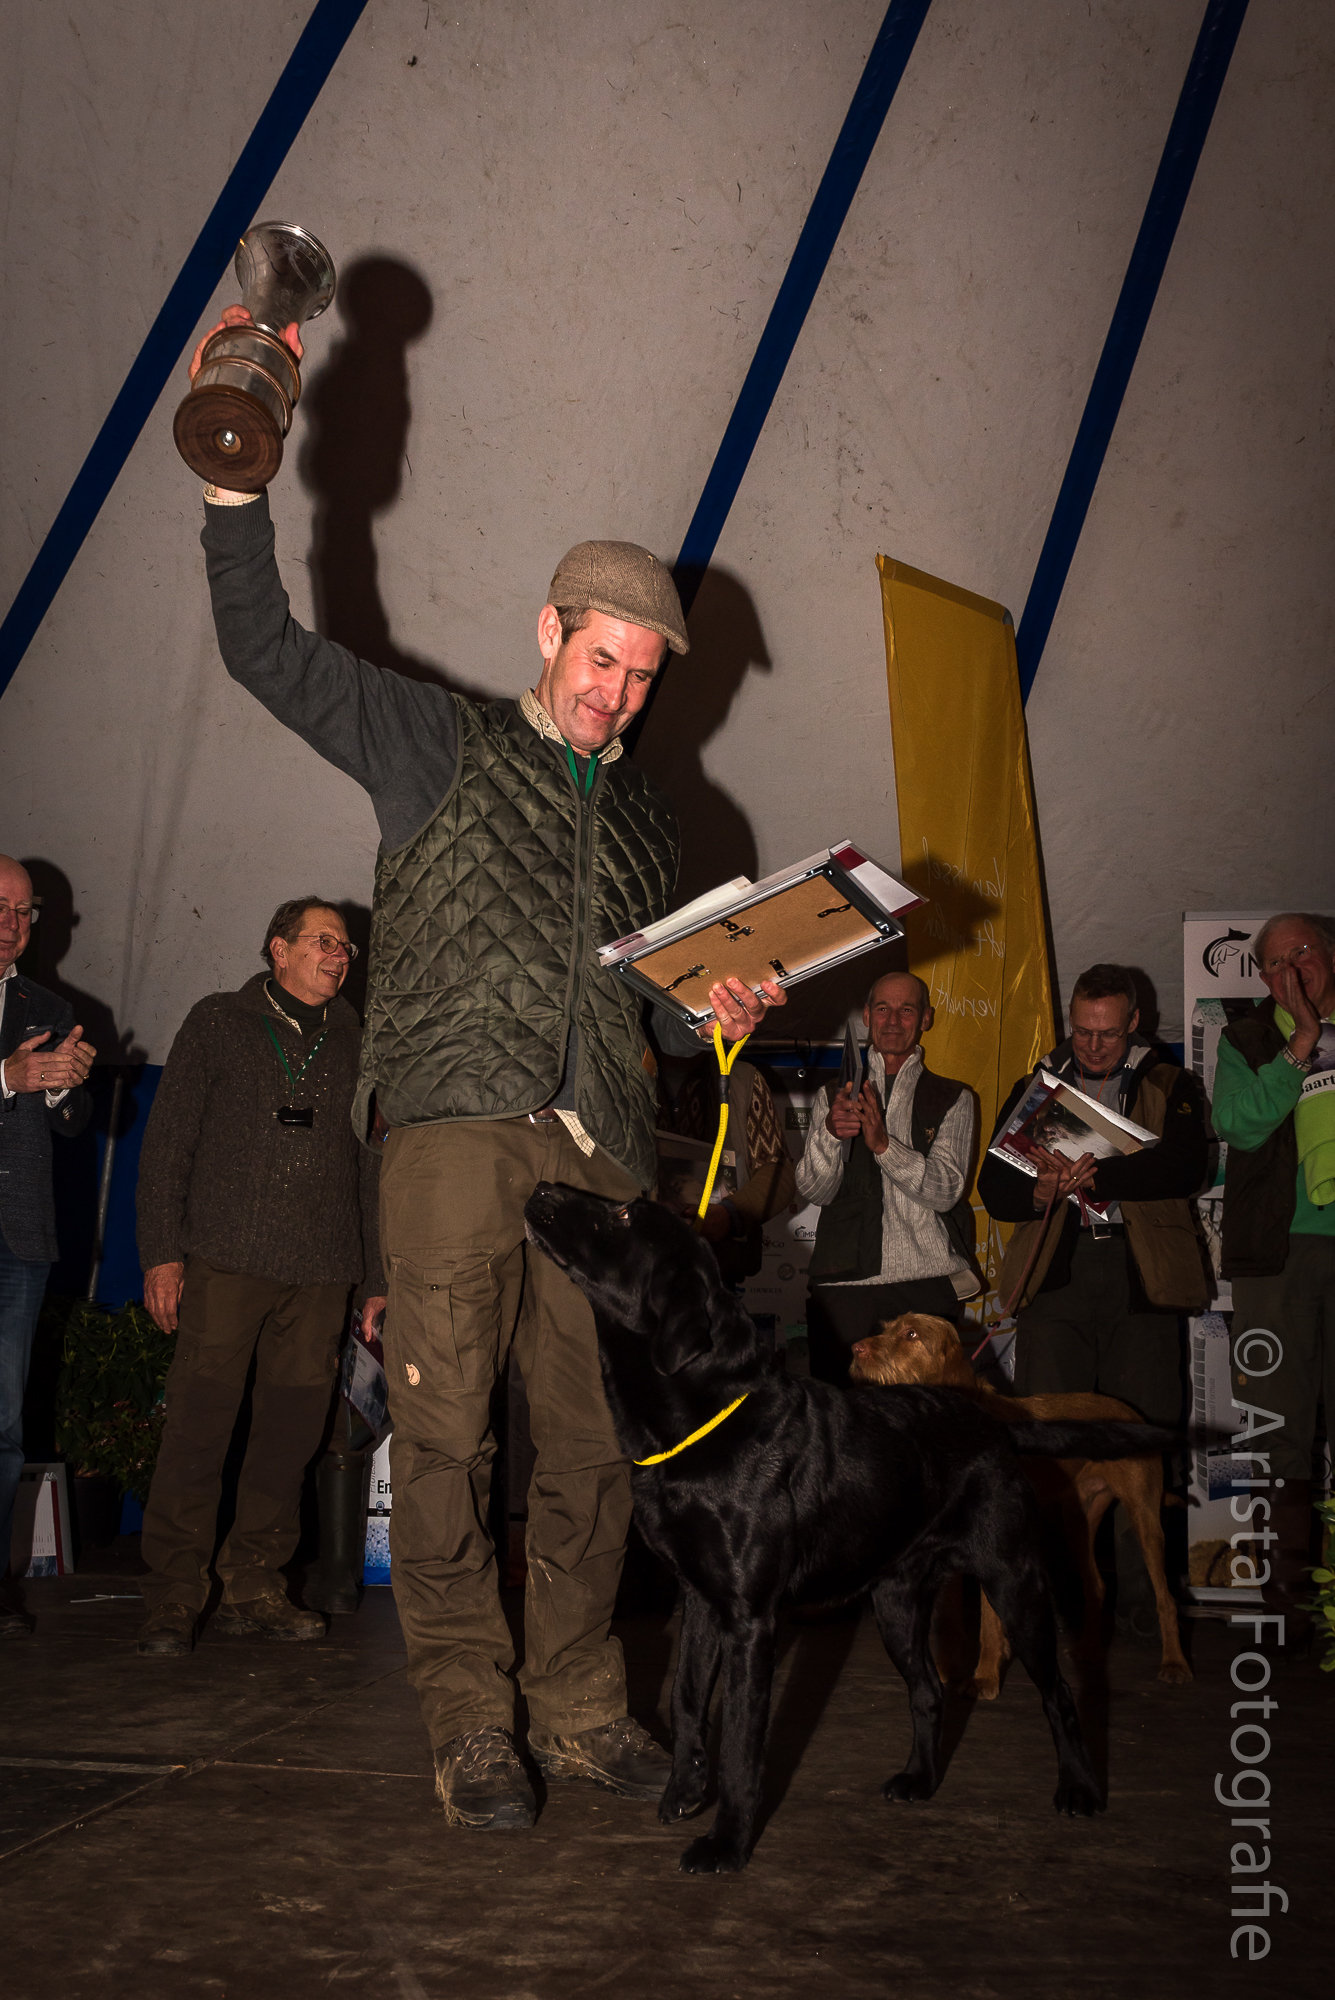 Nimrod 2017 winnaar Wilfred Schenk wint met Labrador Retriever James